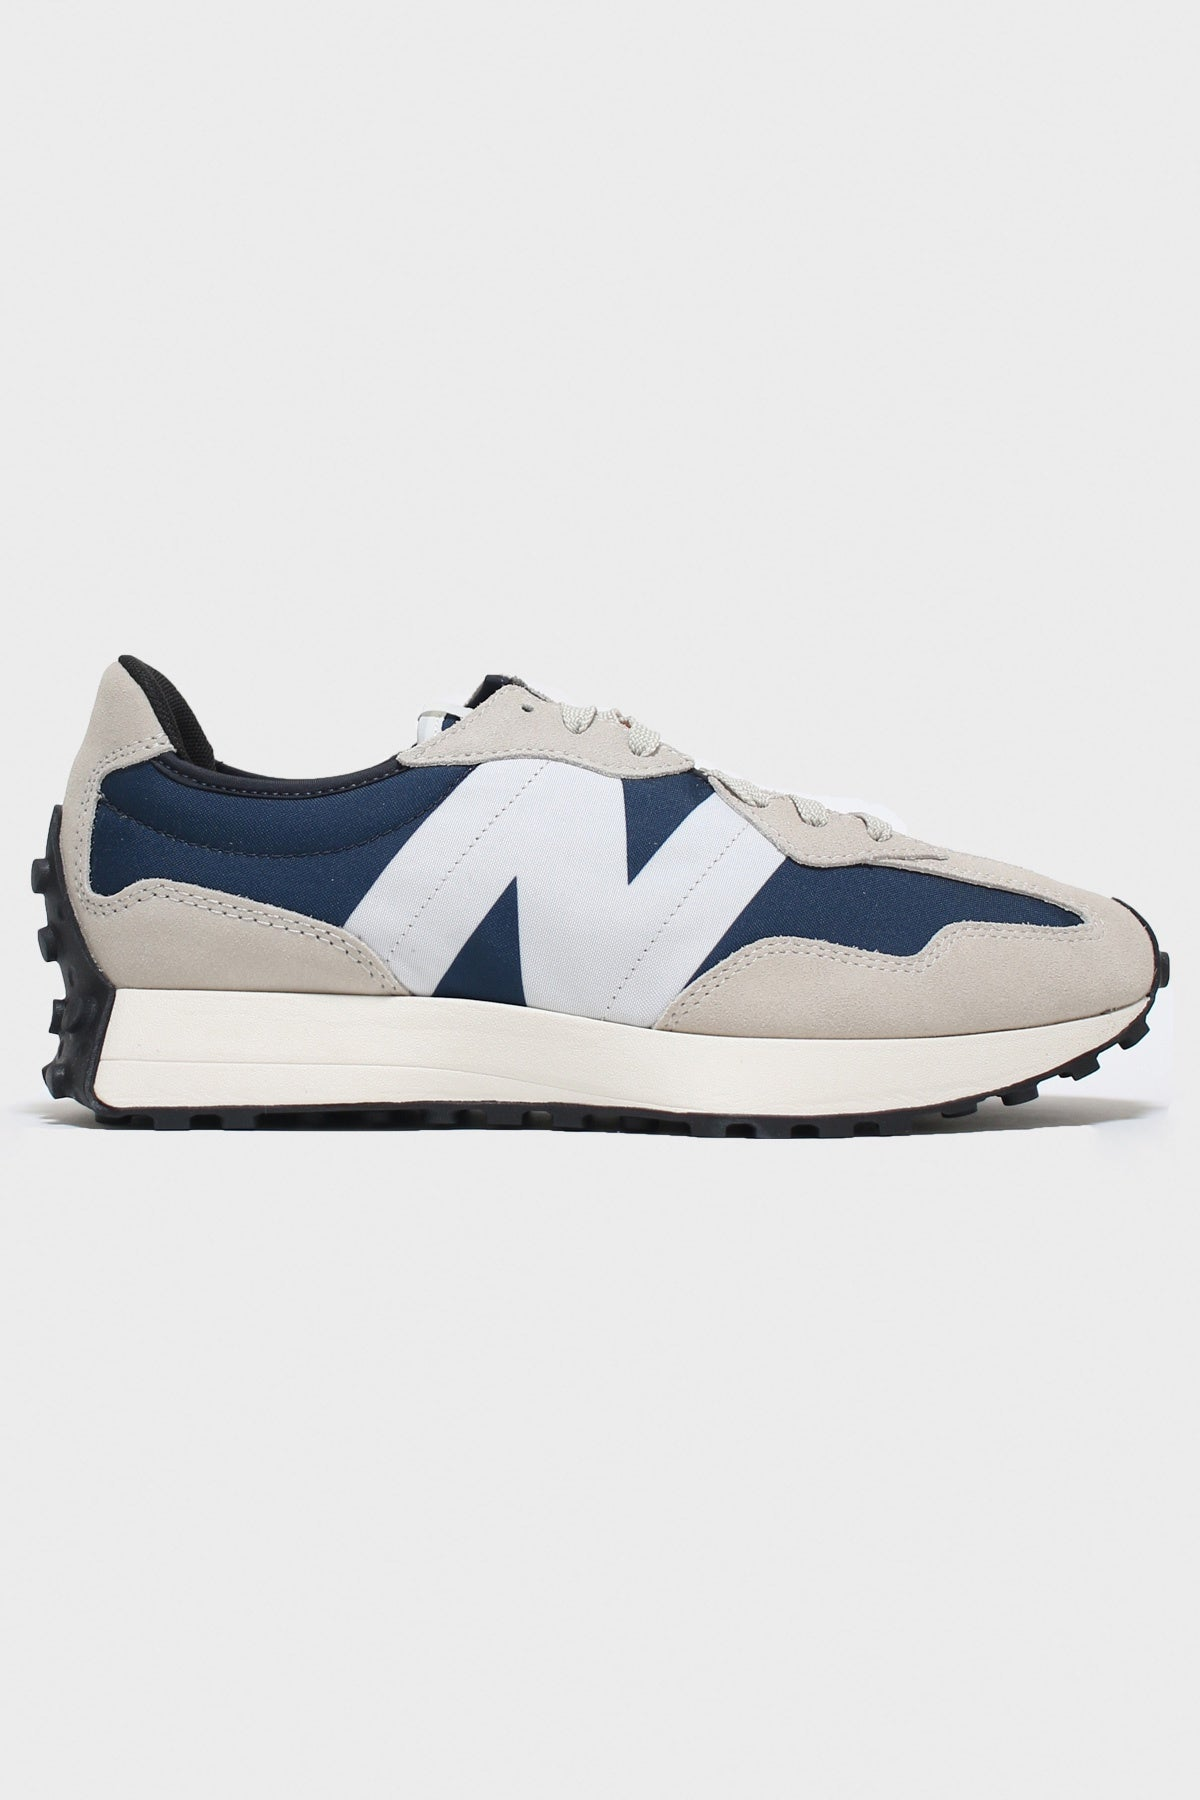 New Balance - 327 - Outerspace/Timberwolf - Canoe Club